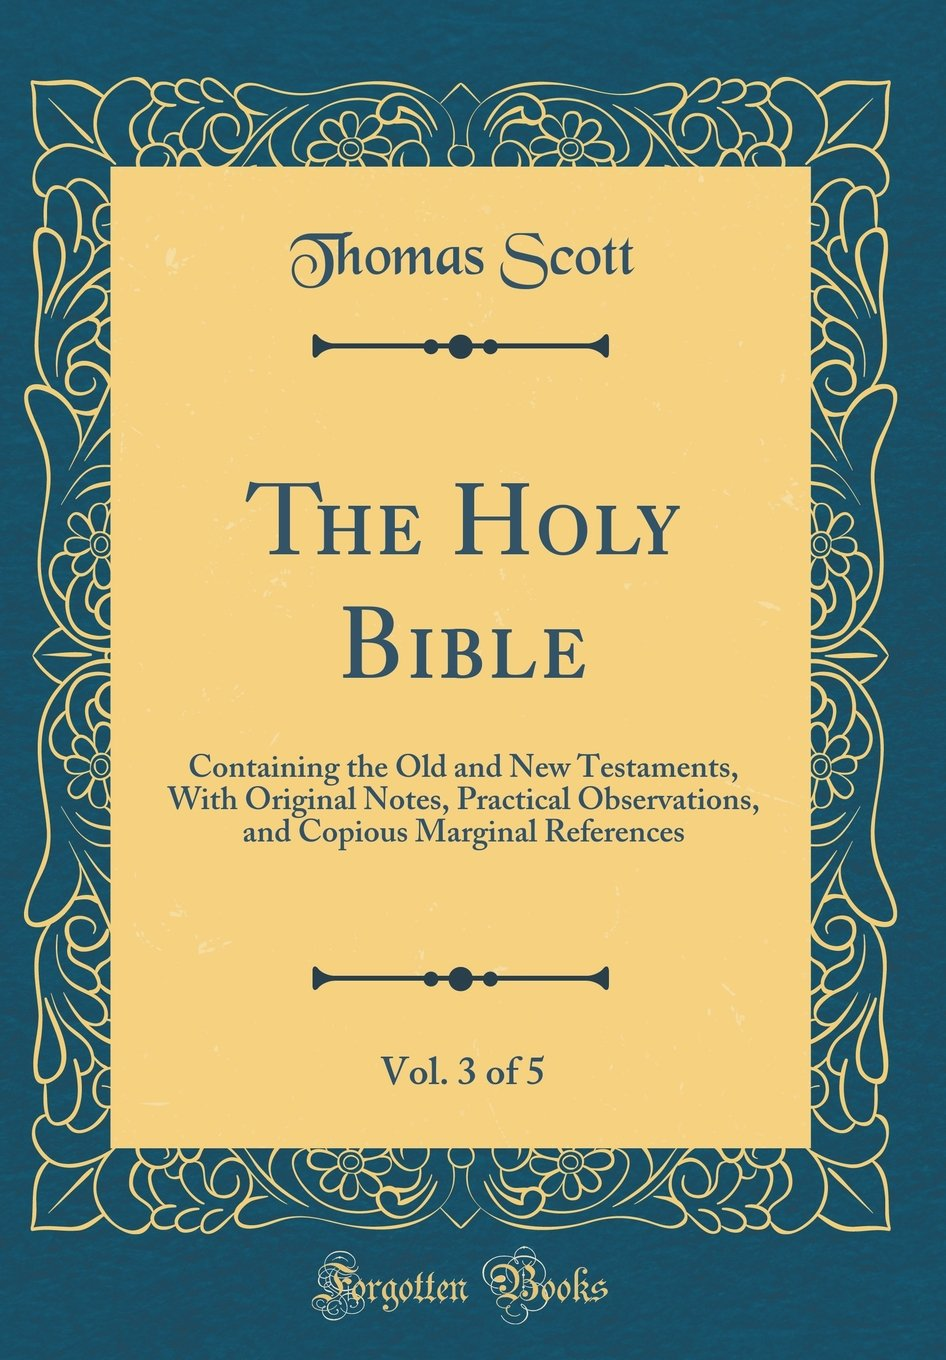 Read Online The Holy Bible, Vol. 3 of 5: Containing the Old and New Testaments, With Original Notes, Practical Observations, and Copious Marginal References (Classic Reprint) ebook